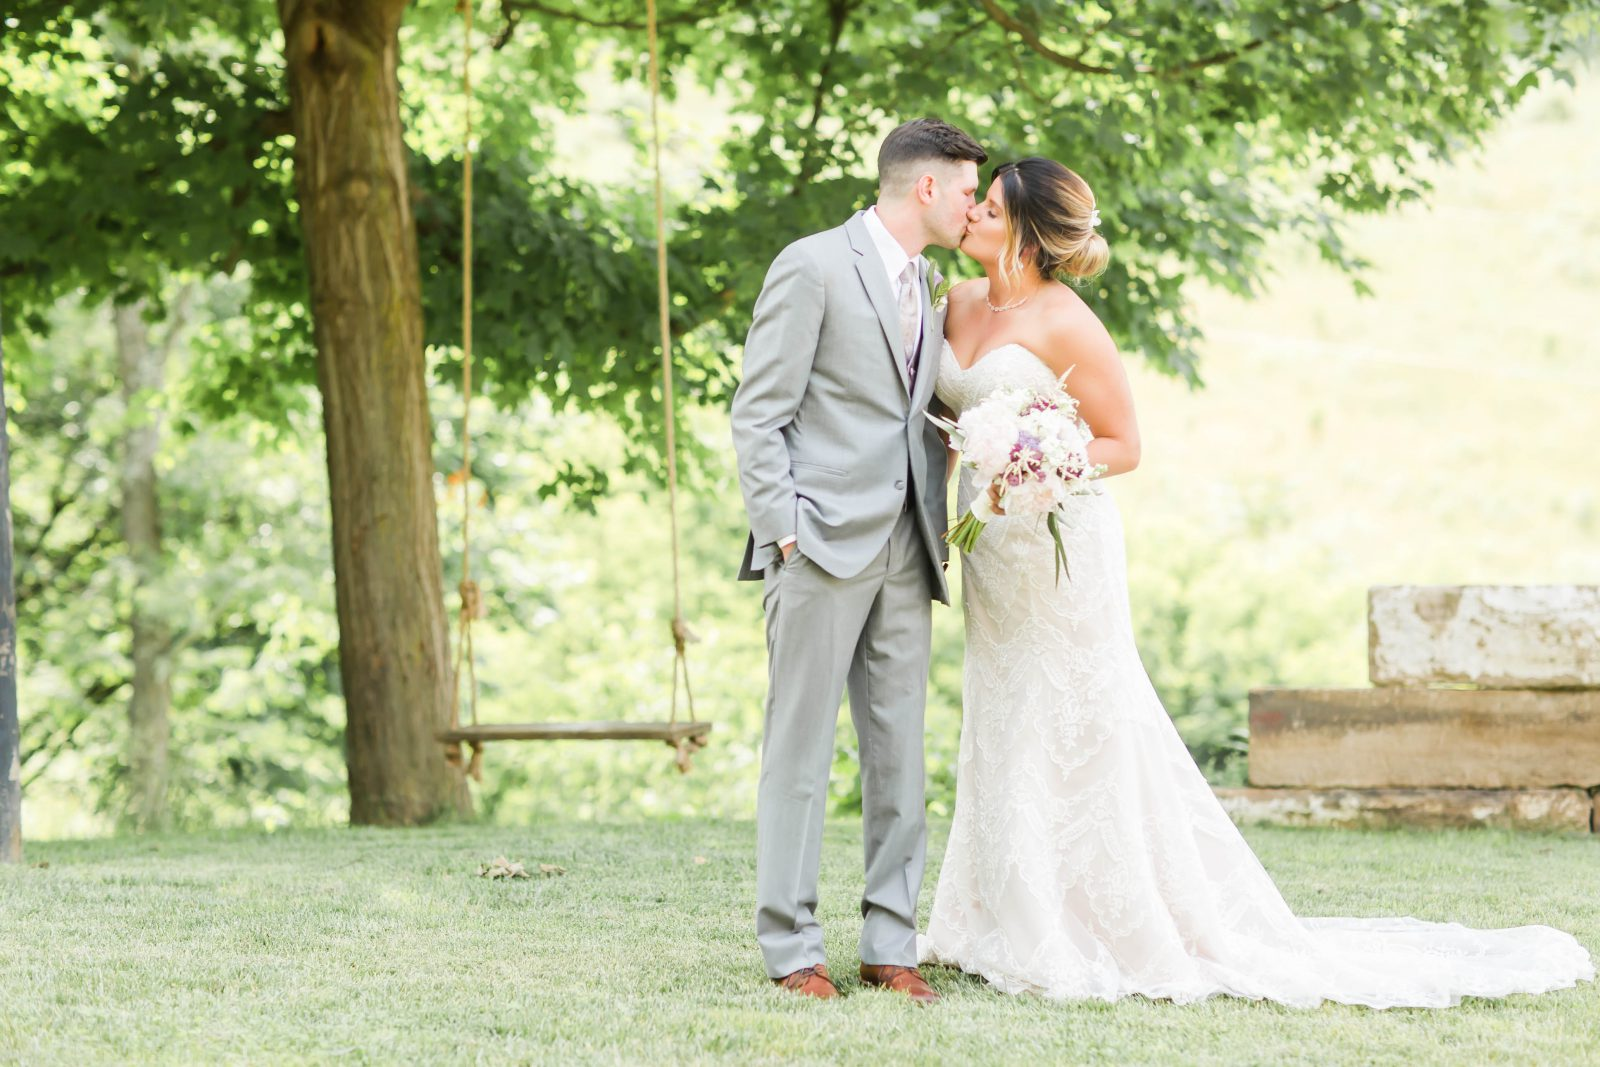 rivercrest-farm-summer-wedding-loren-jackson-photography-34